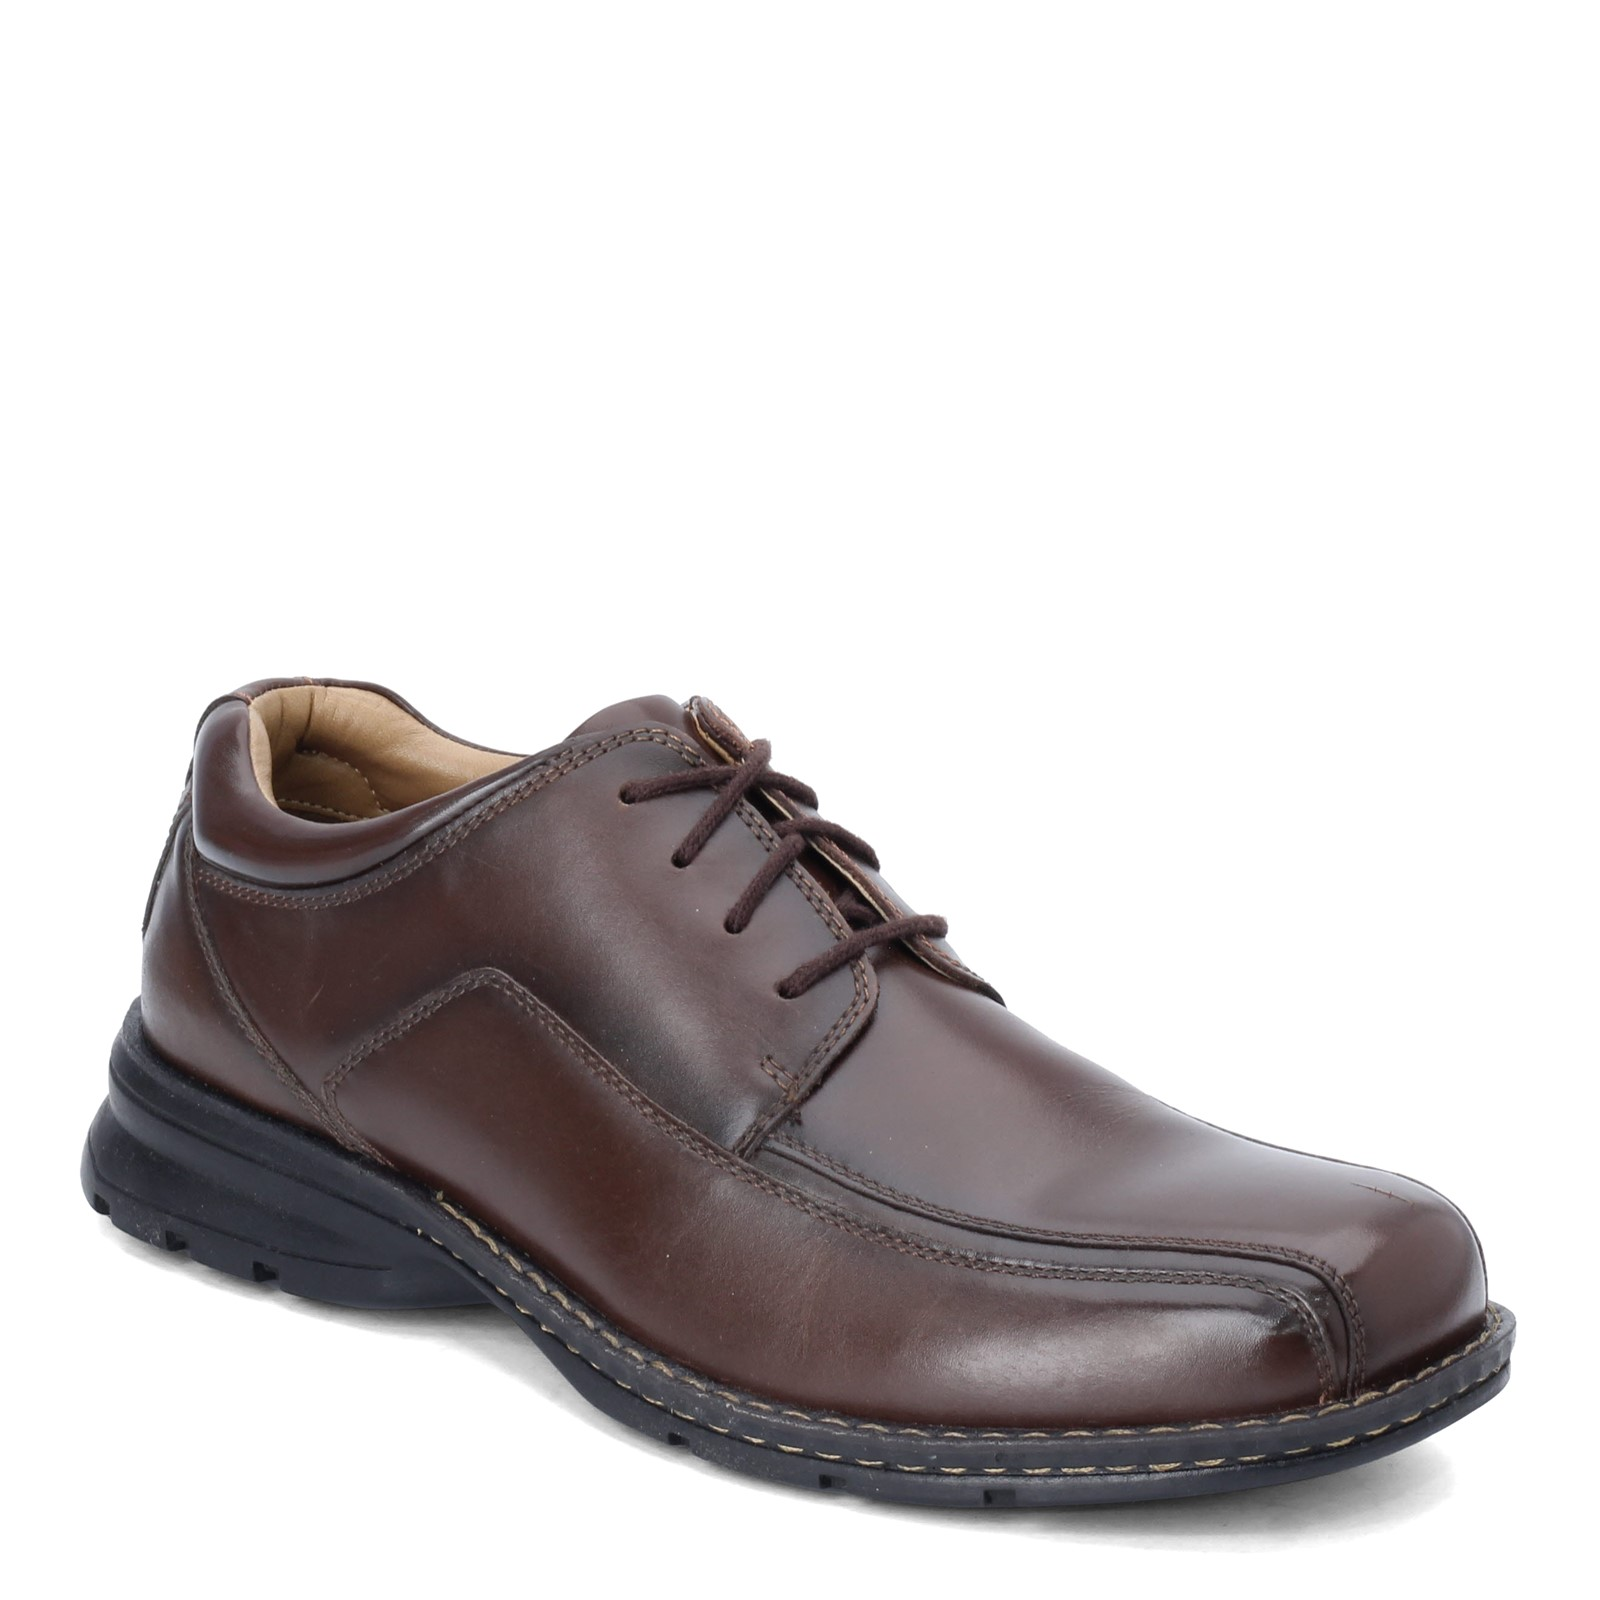 Men's Dockers, Trustee Oxford